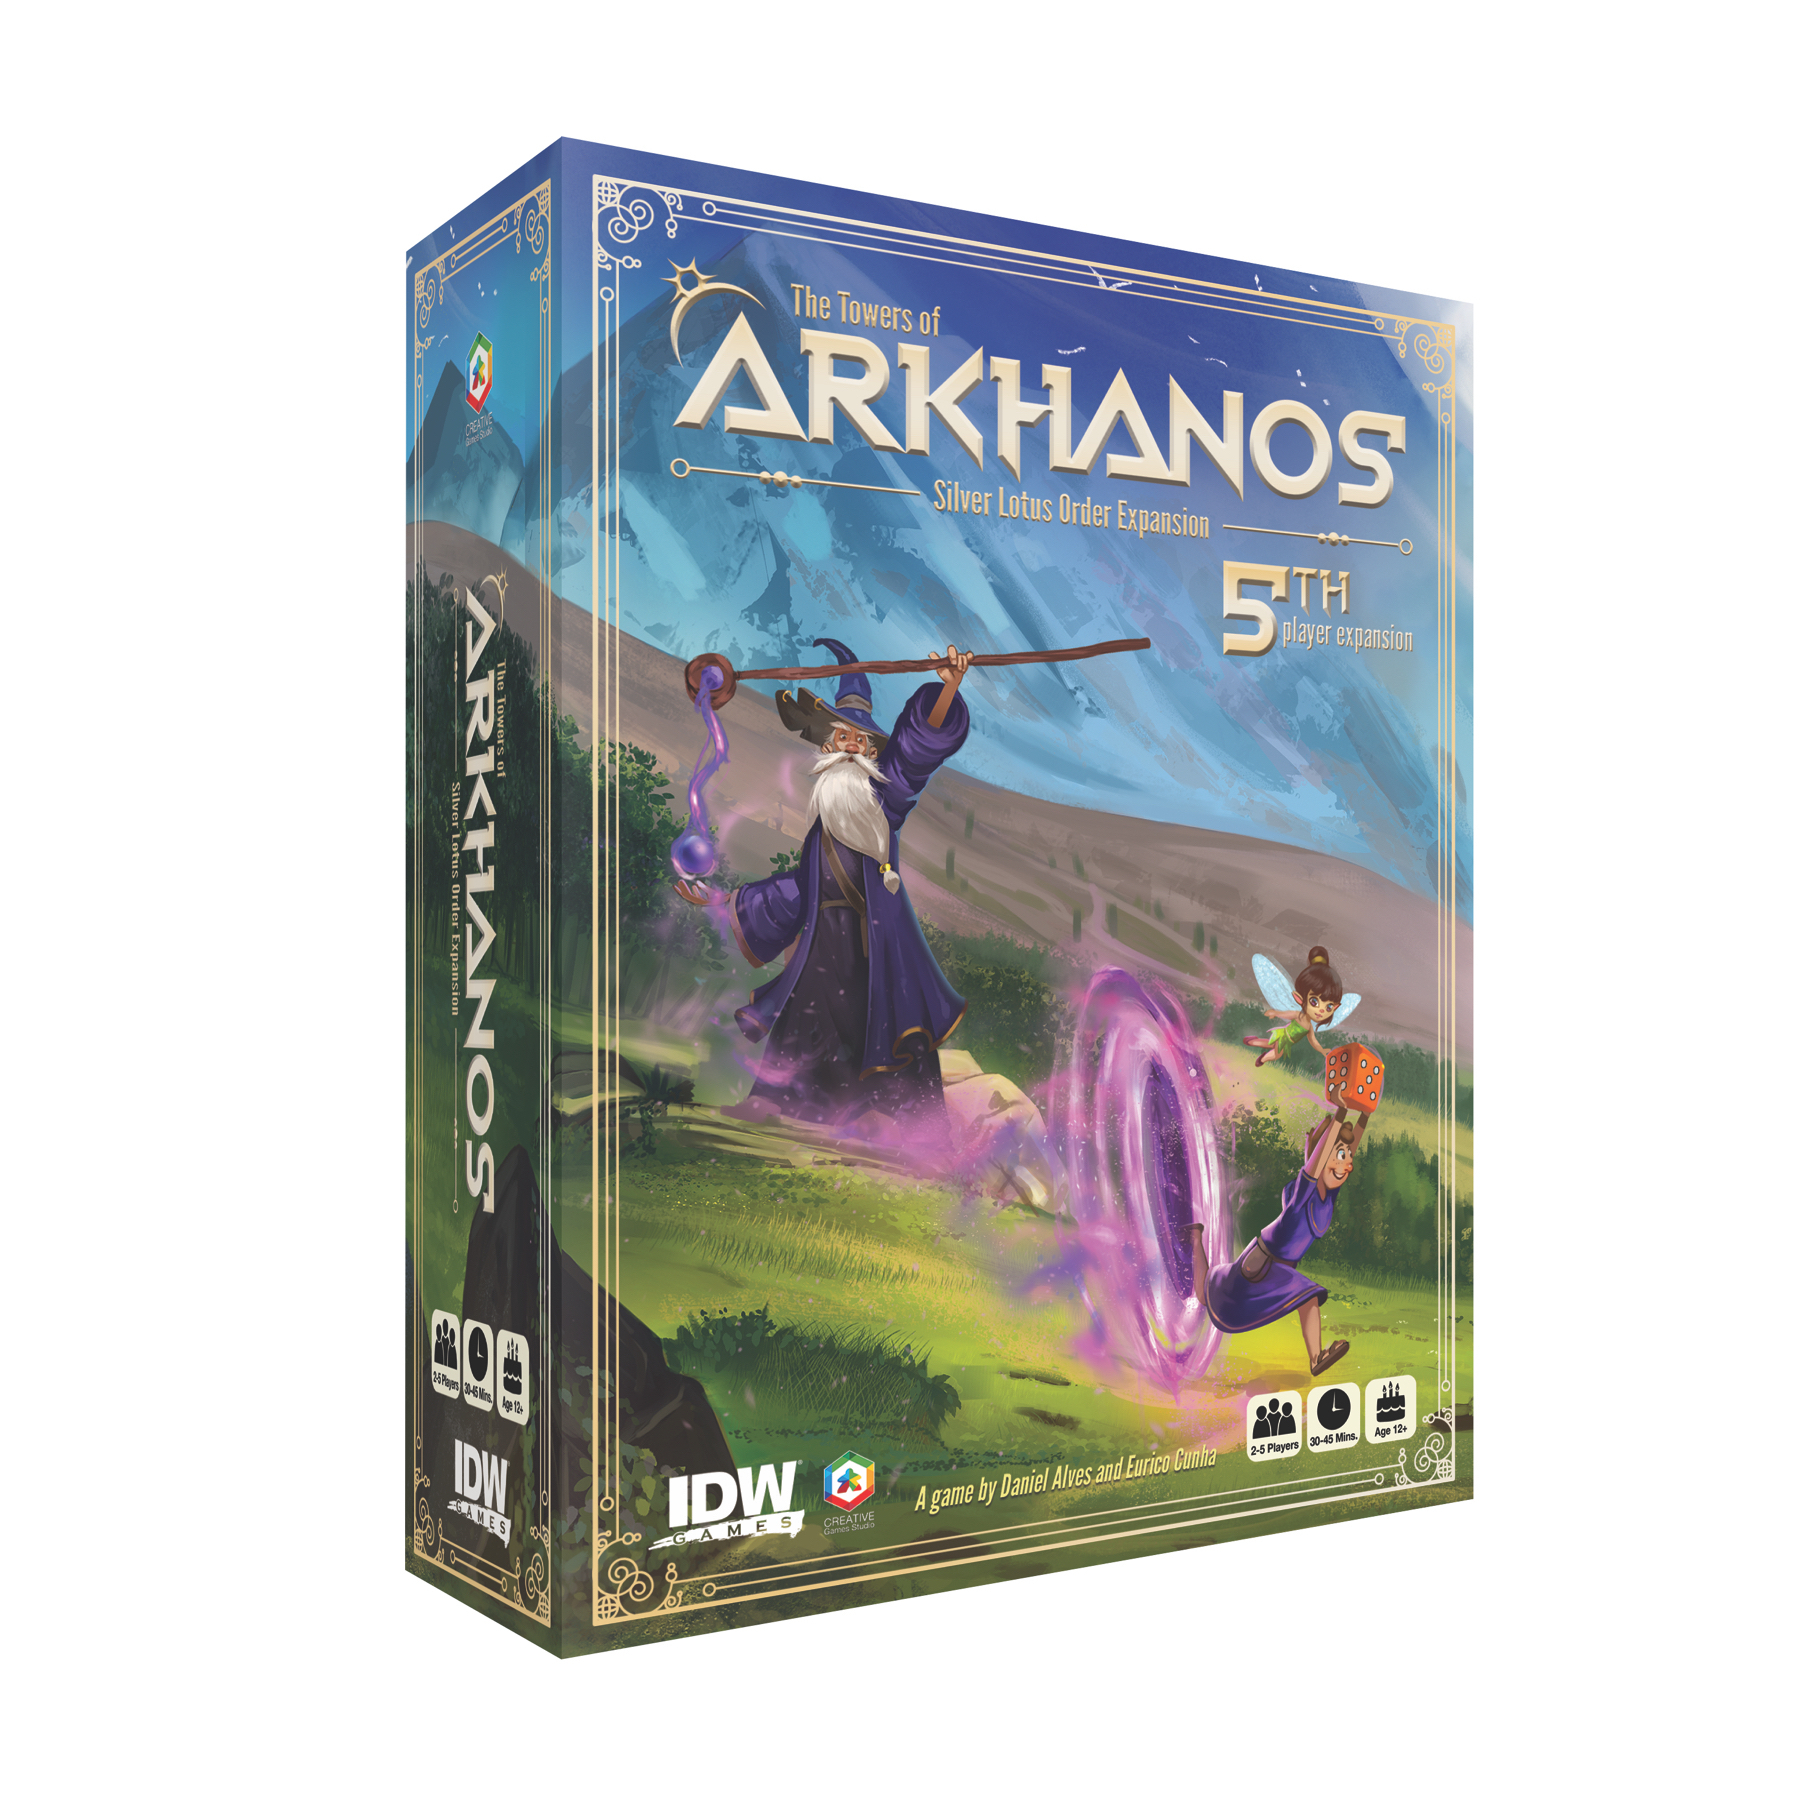 TOWERS OF ARKHANOS SILVER LOTUS ORDER 5TH PLAYER EXPANSION (